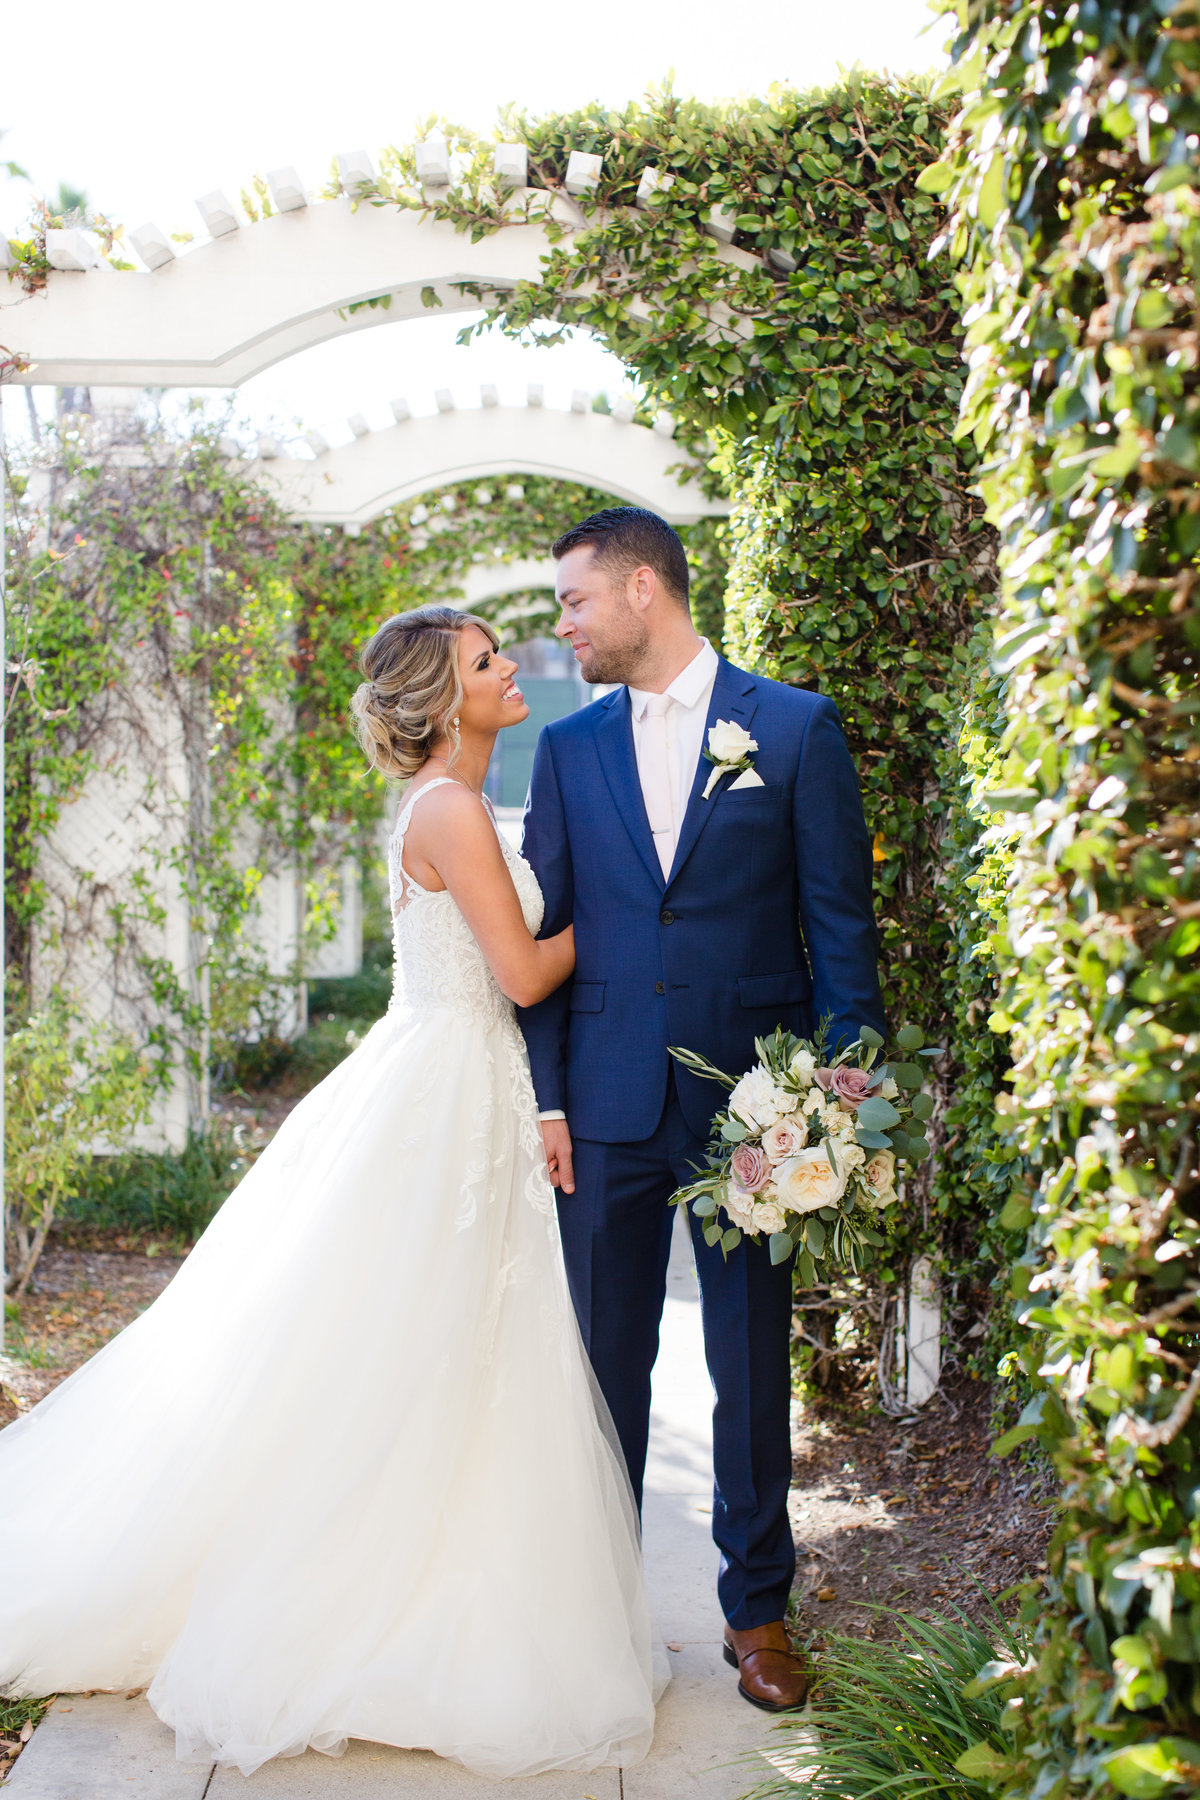 Katherine_beth_photography_San_diego_wedding_photographer_san_diego_wedding_tom_Hams_Lighthouse_wedding_001